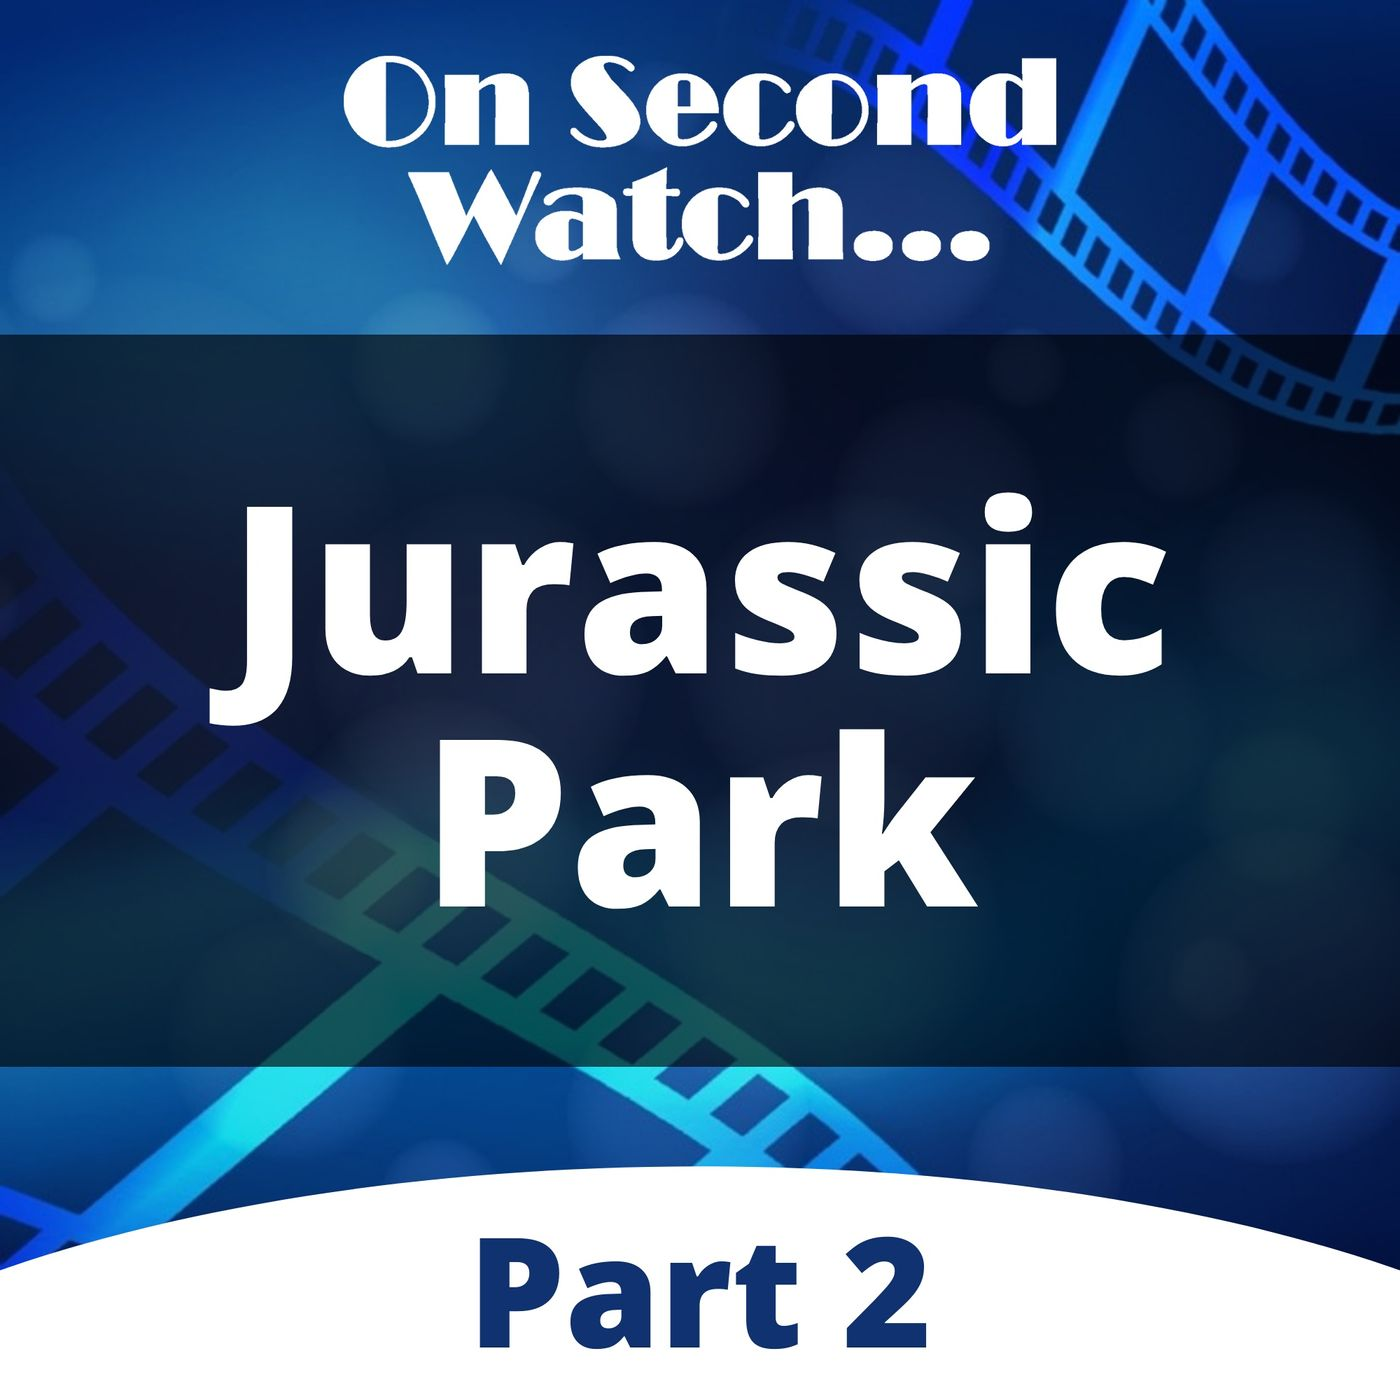 Jurassic Park (1993) - Part 2, Rewatch Review